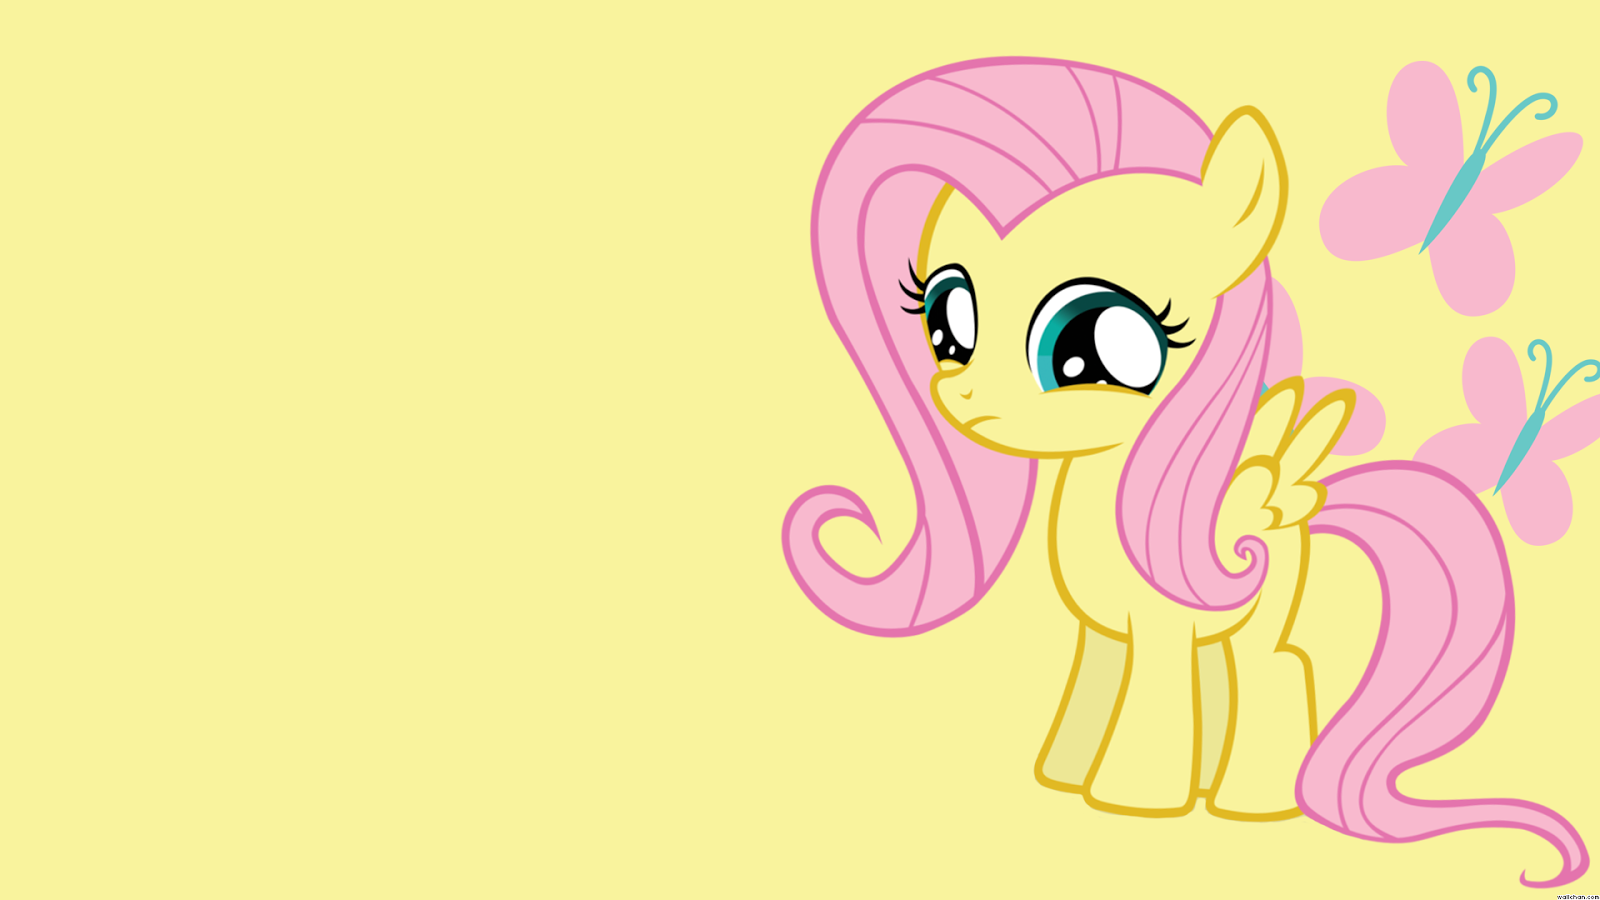 Free Download 106760 My Little Pony Friendship Is Magic Fluttershy Wallpaperpng 1600x900 For Your Desktop Mobile Tablet Explore 48 Animated Mlp Wallpaper Animated Rainbow Dash Wallpaper Animated My Little